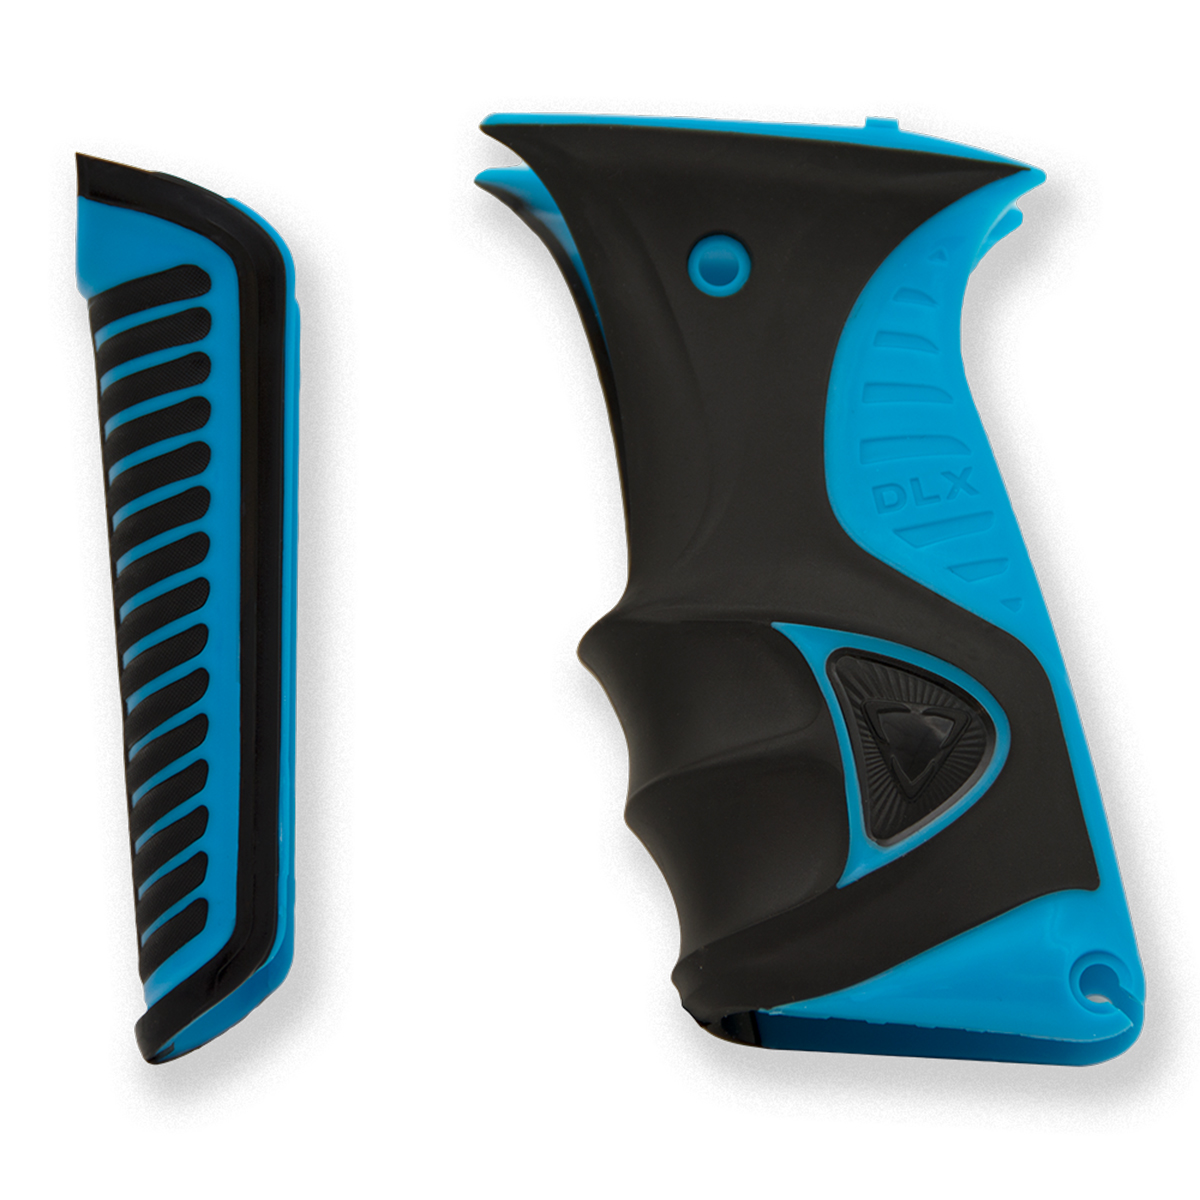 DLX Luxe Ice Grip Kit - Teal